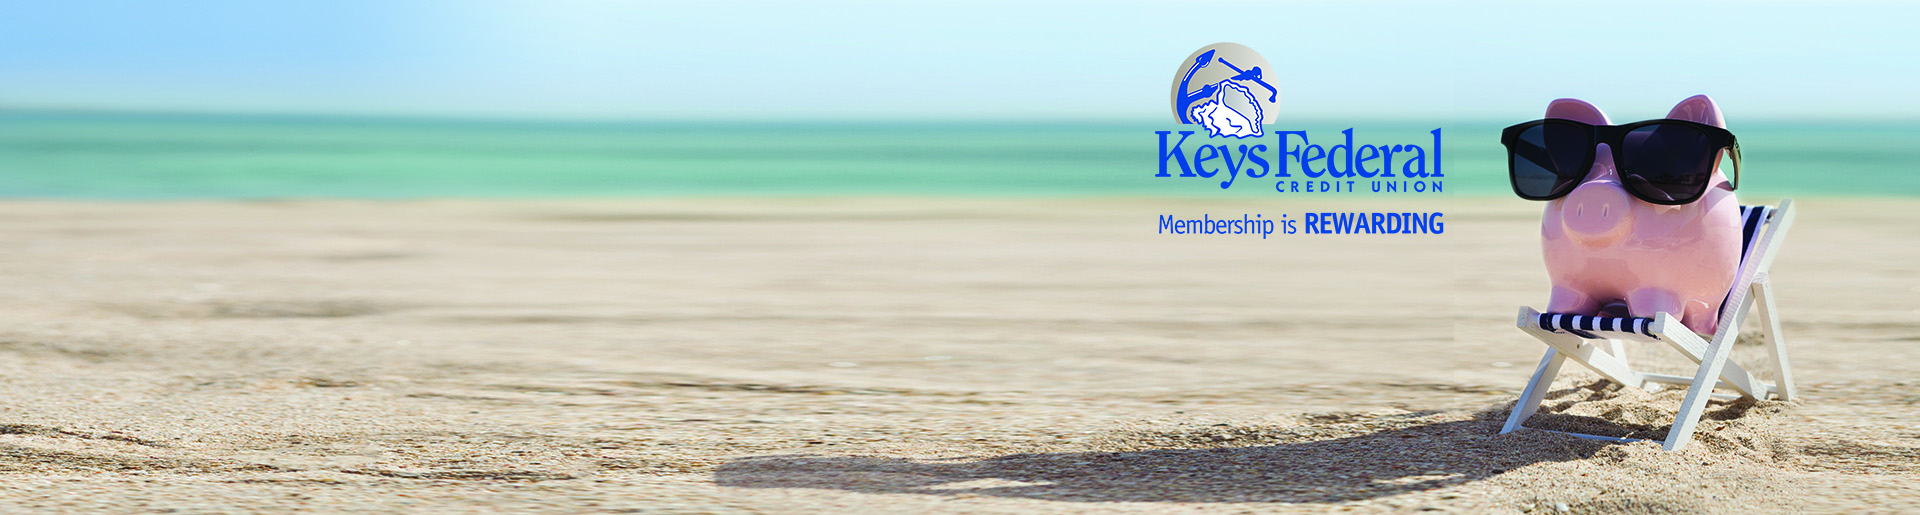 KeysFederal Credit Union Membership is REWARDING!